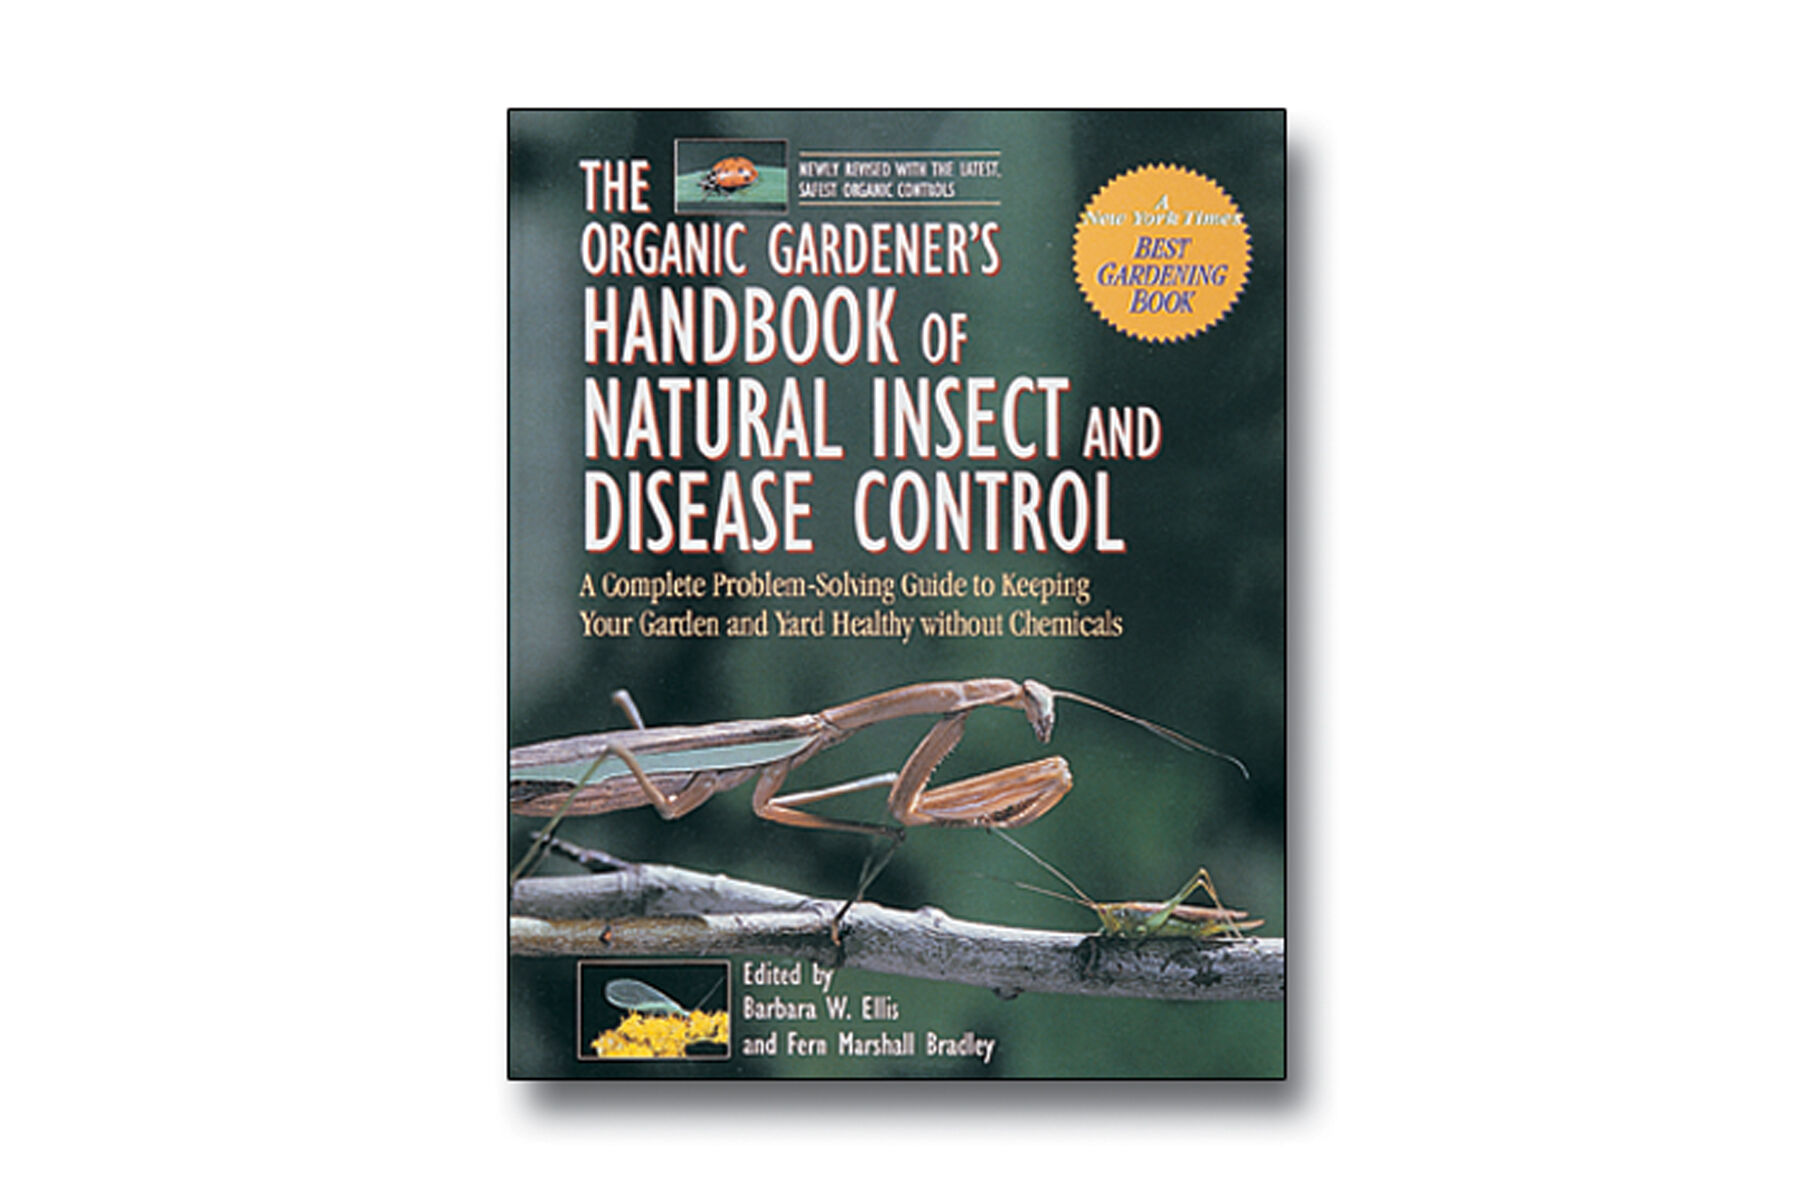 The Organic Gardeneru0027s Handbook Of Natural Insect And Disease Control Books